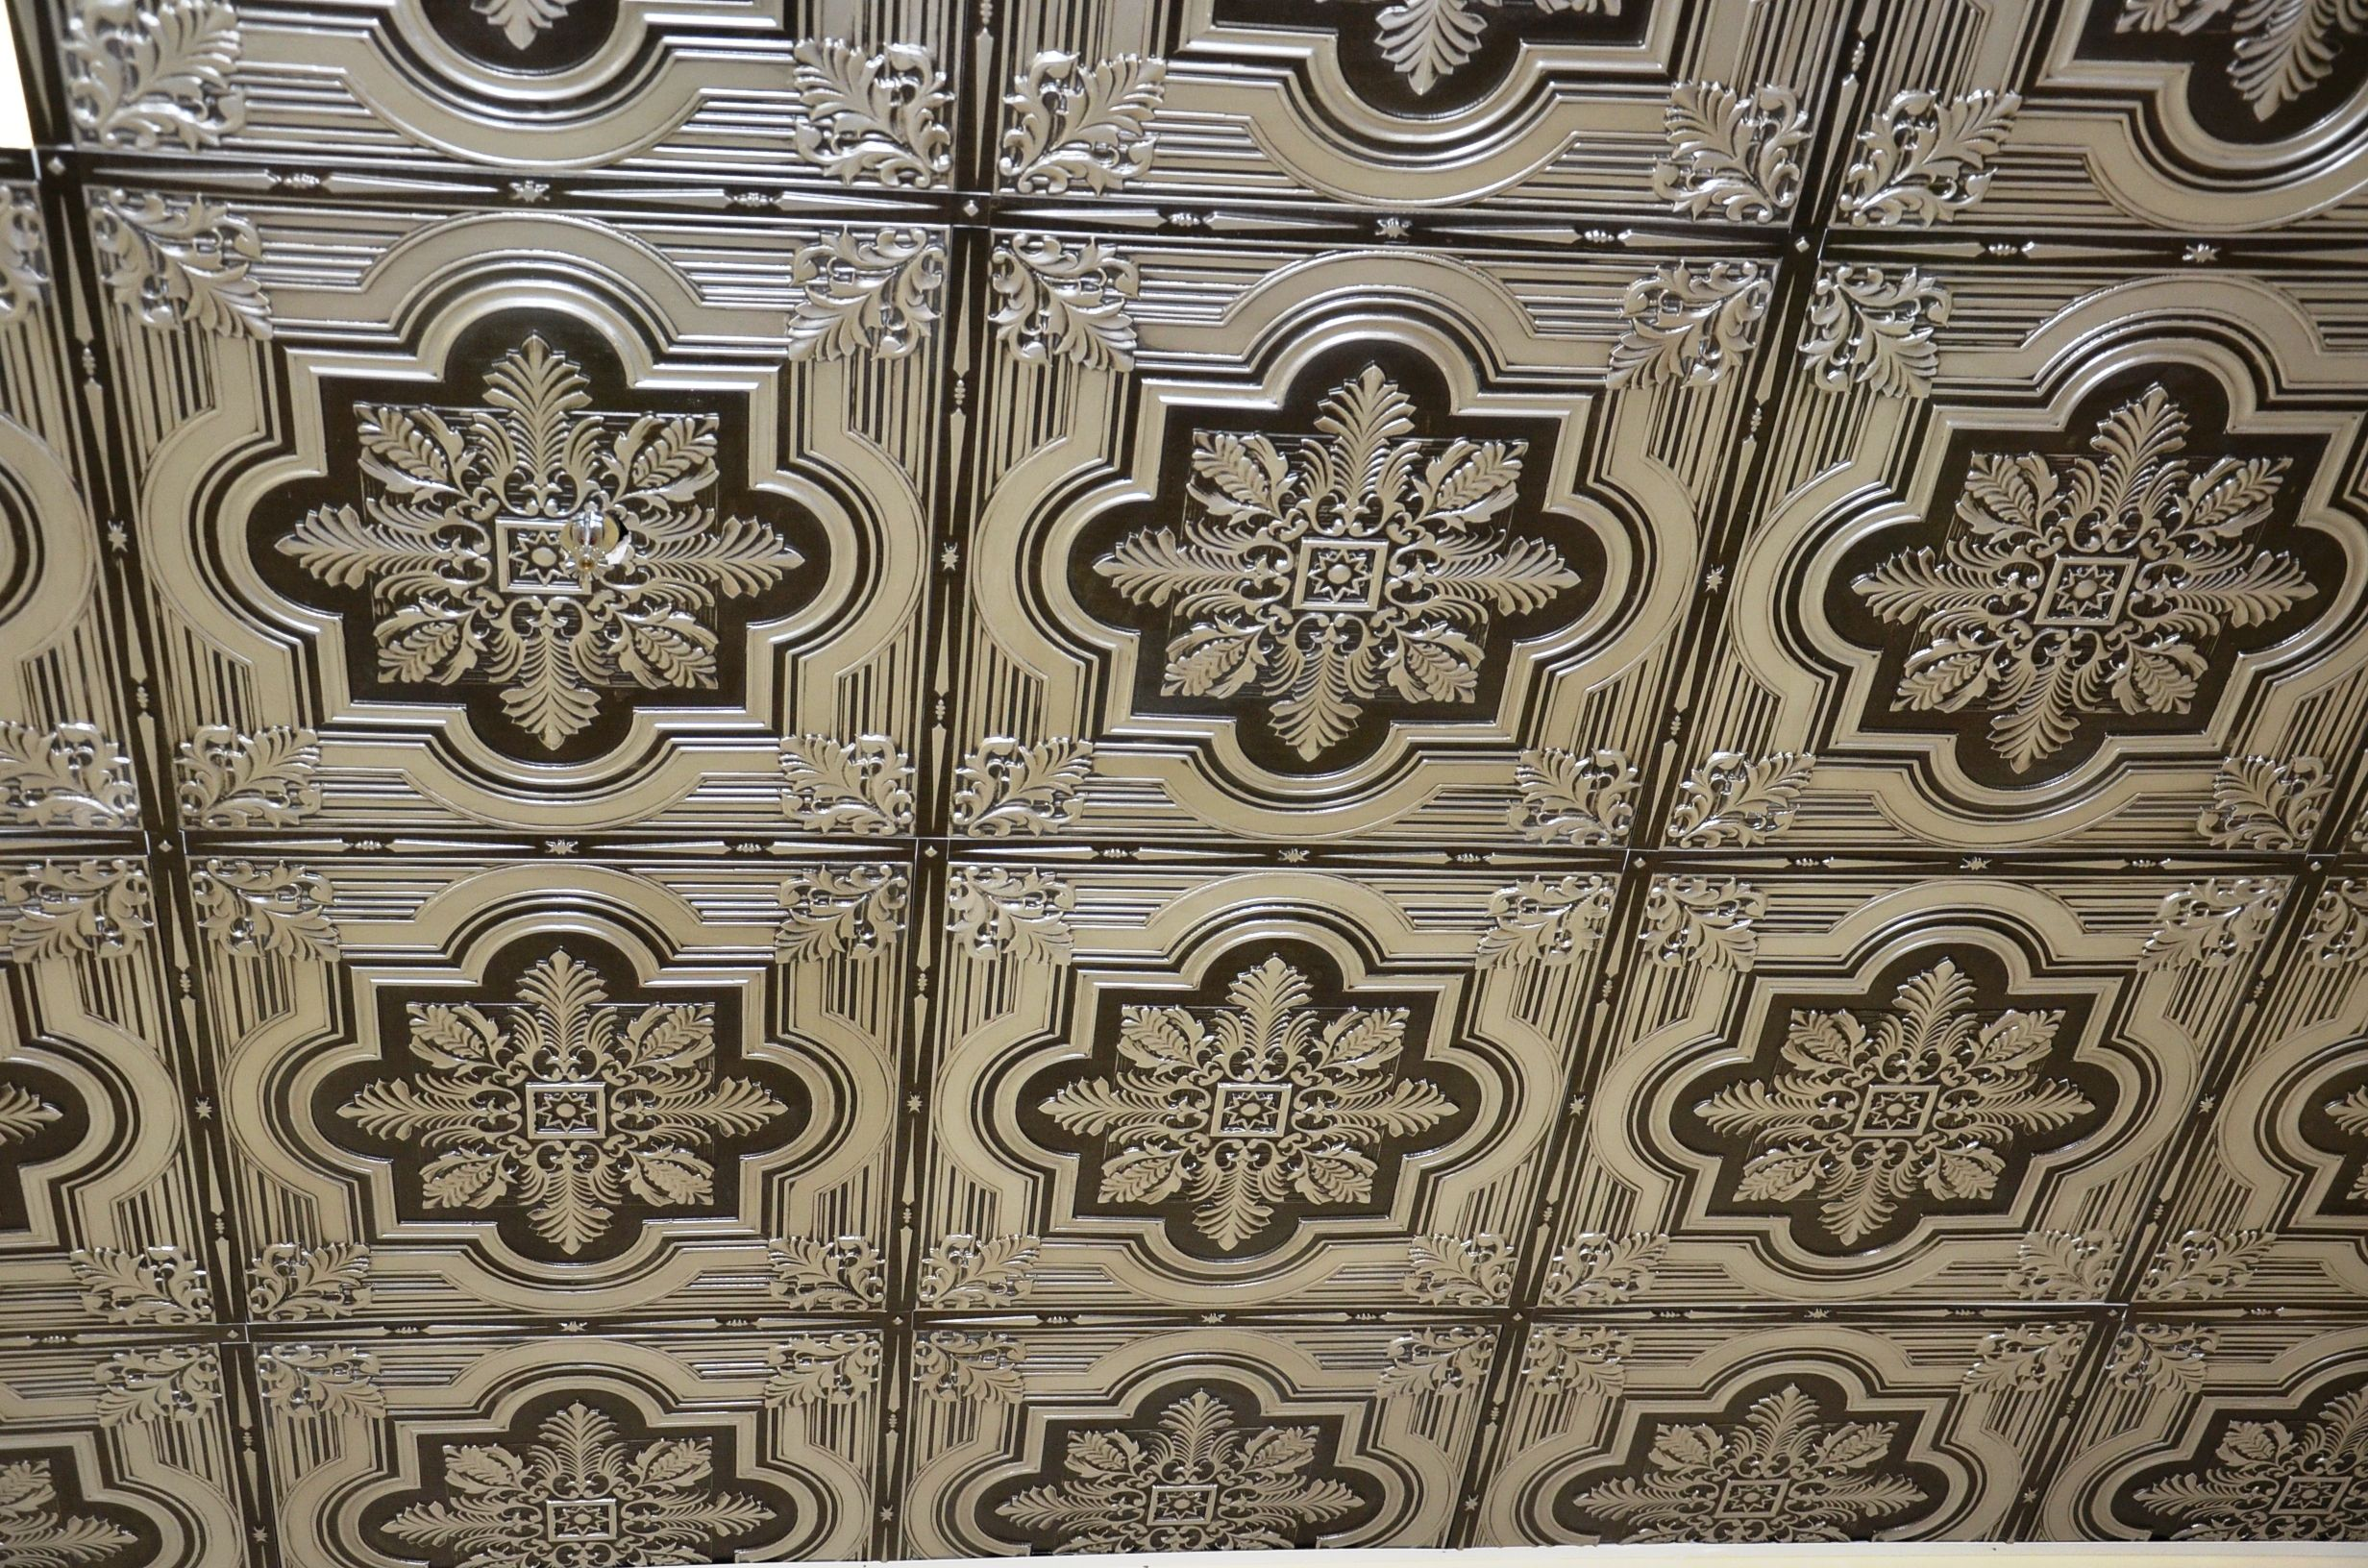 ceilings brothers n tile decorative backsplash ribbons ceiling on tiles tin bows a property